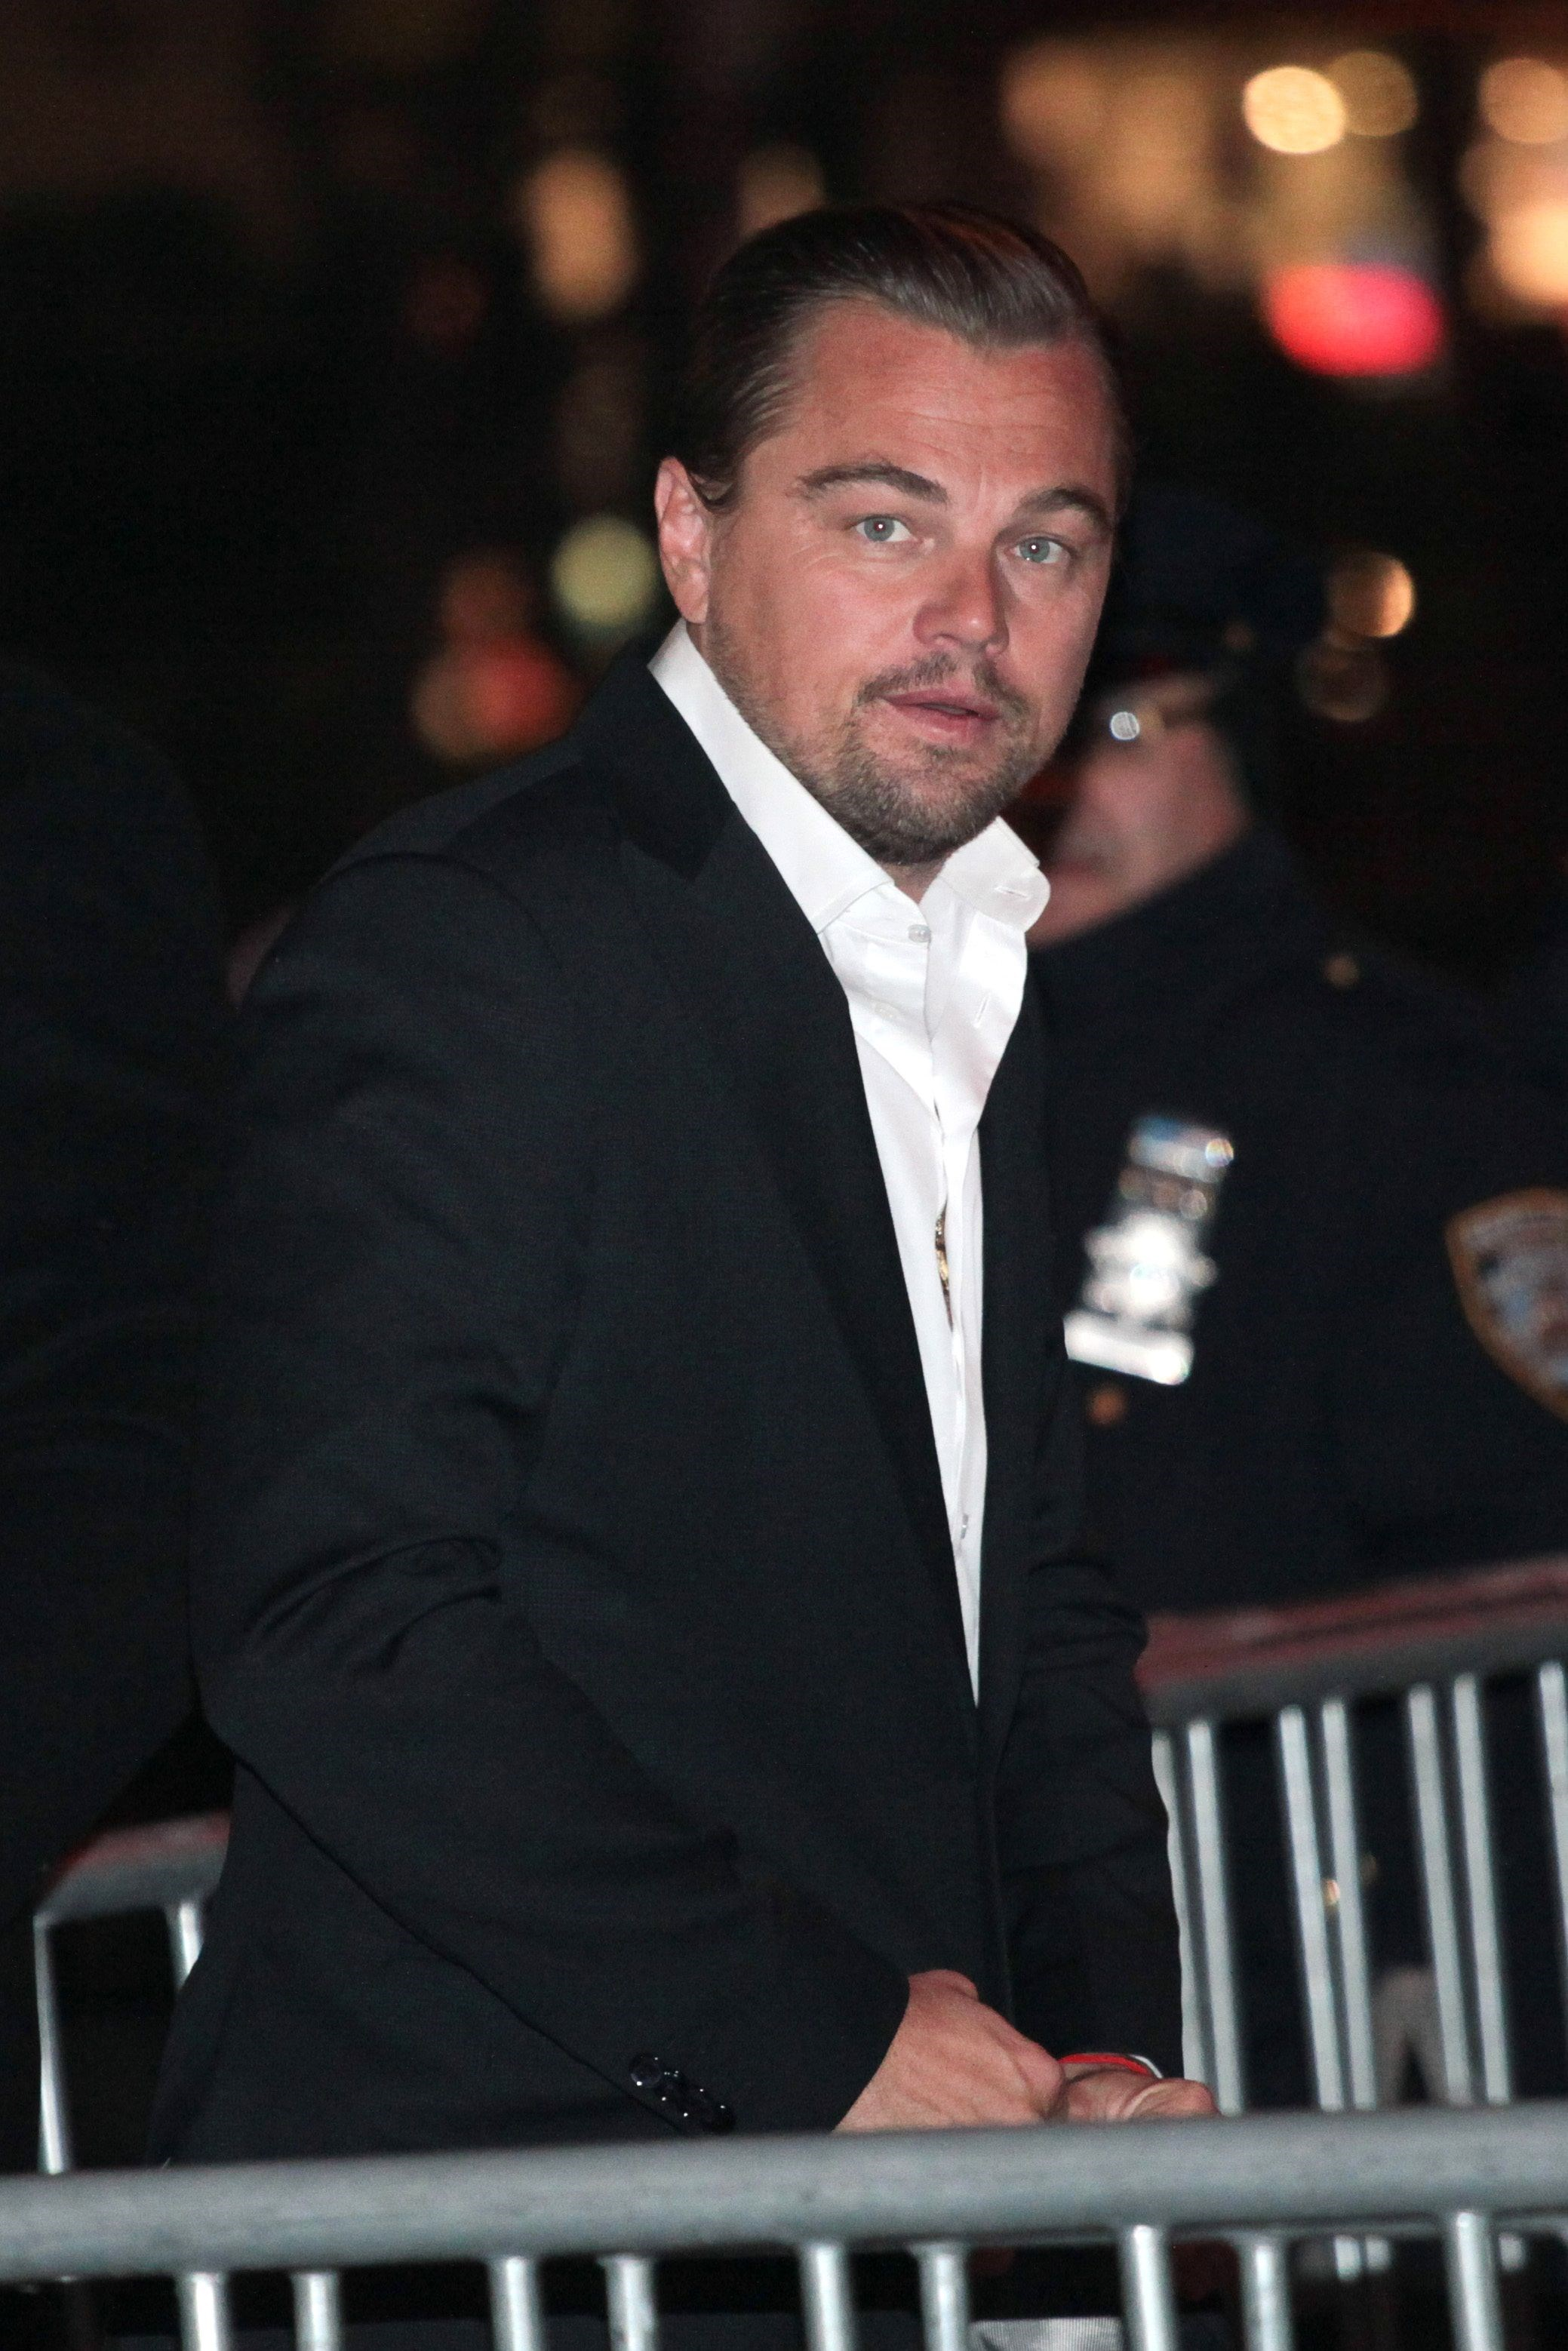 Leonardo DiCaprio shows his Beyhive stripes